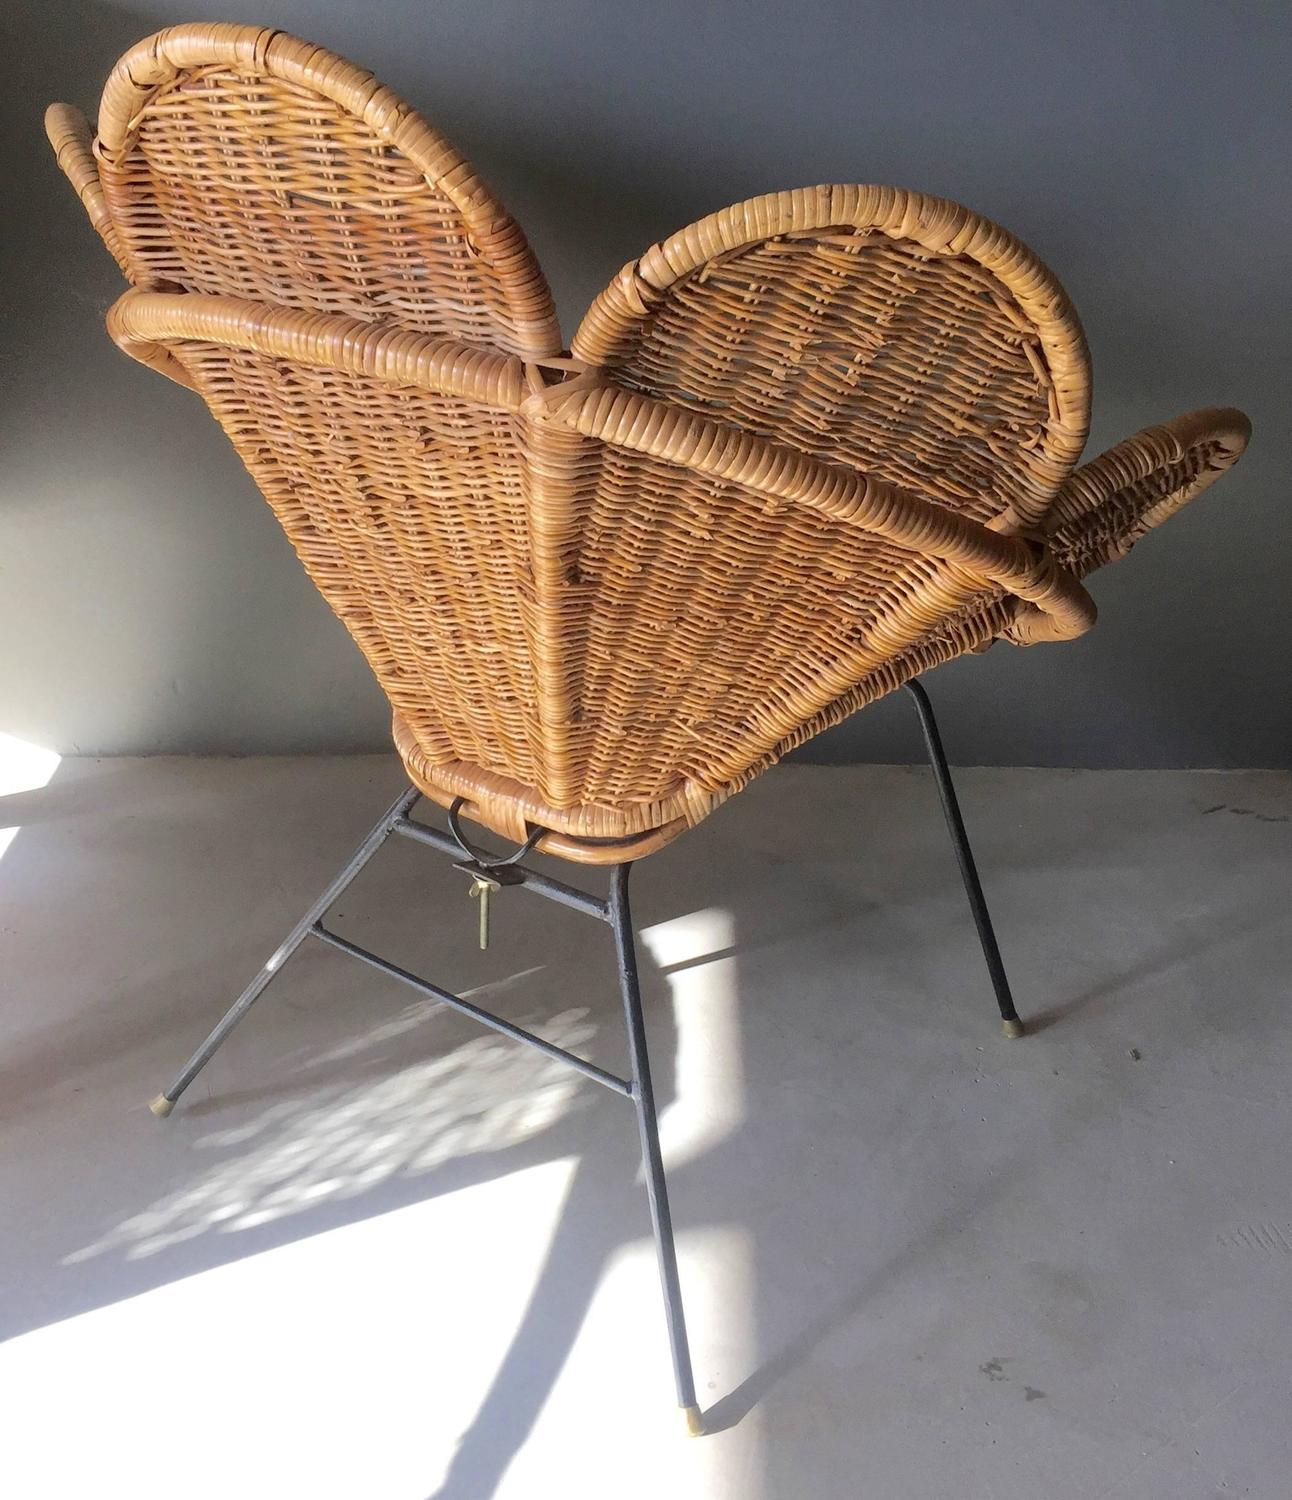 wicker chair for sale knoll life replacement parts rattan and iron flower at 1stdibs